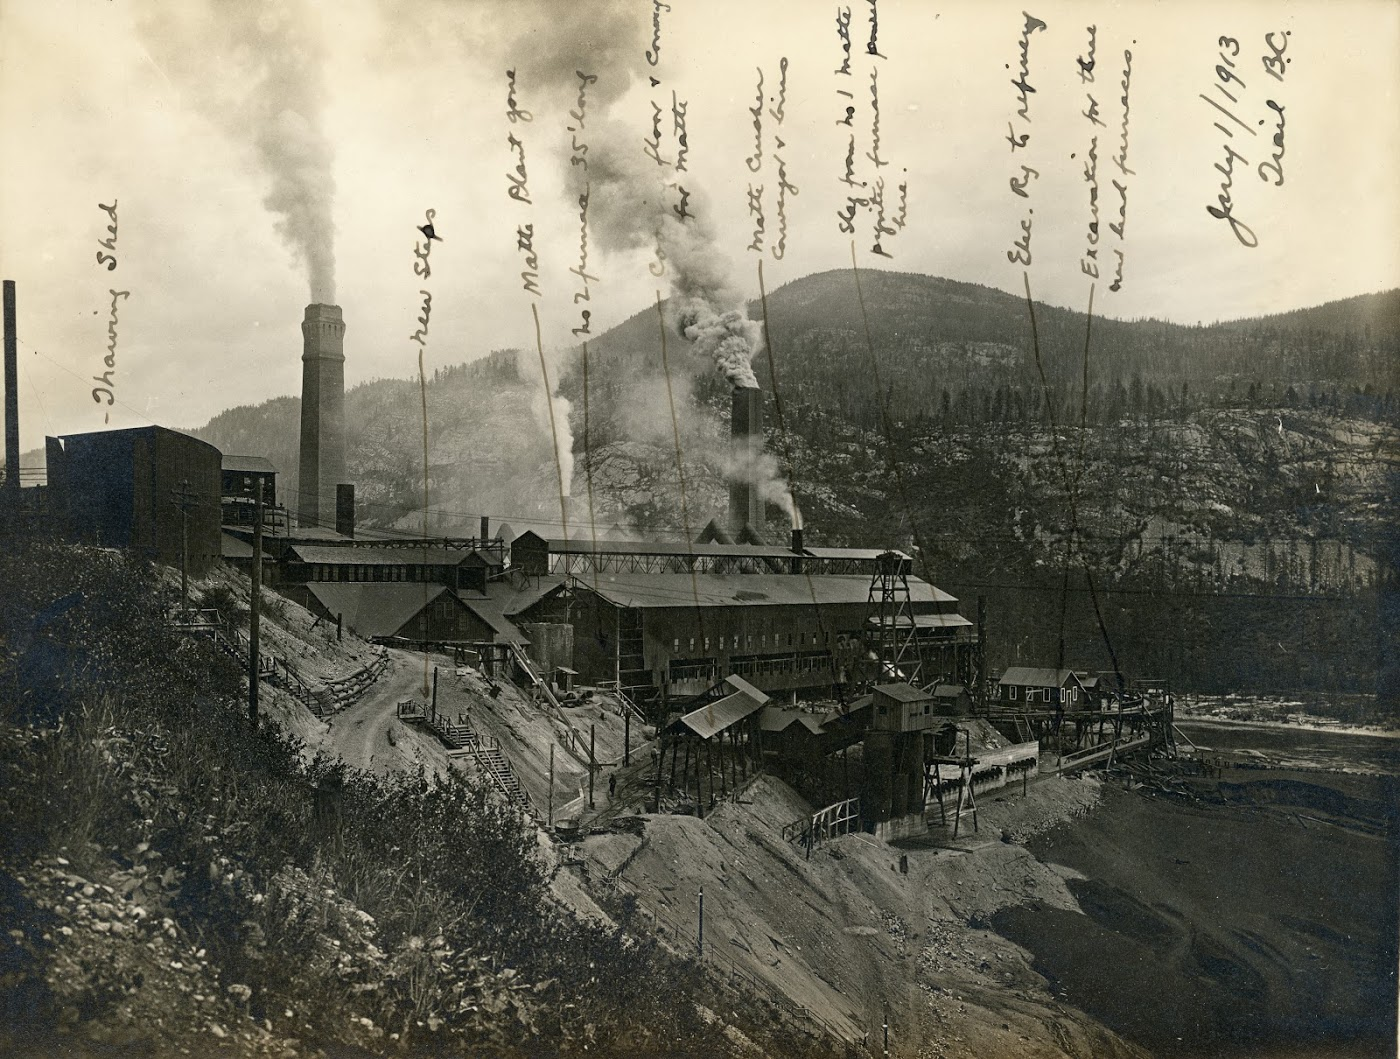 1916:CM&S Partnership - Anticipating growing energy demands, especially with the First World War bringing large zinc contracts, the Consolidated Mining & Smelting Company (CM&S) acquires the West Kootenay Power & Light Company as a wholly-owned subsidiary. CM&S will later change its name to Cominco and then to Teck (Teck Trail Operations in Trail, BC).Photo 2318.0171: The CM&S smelting operations in Trail, BC taken July 1st, 1913.